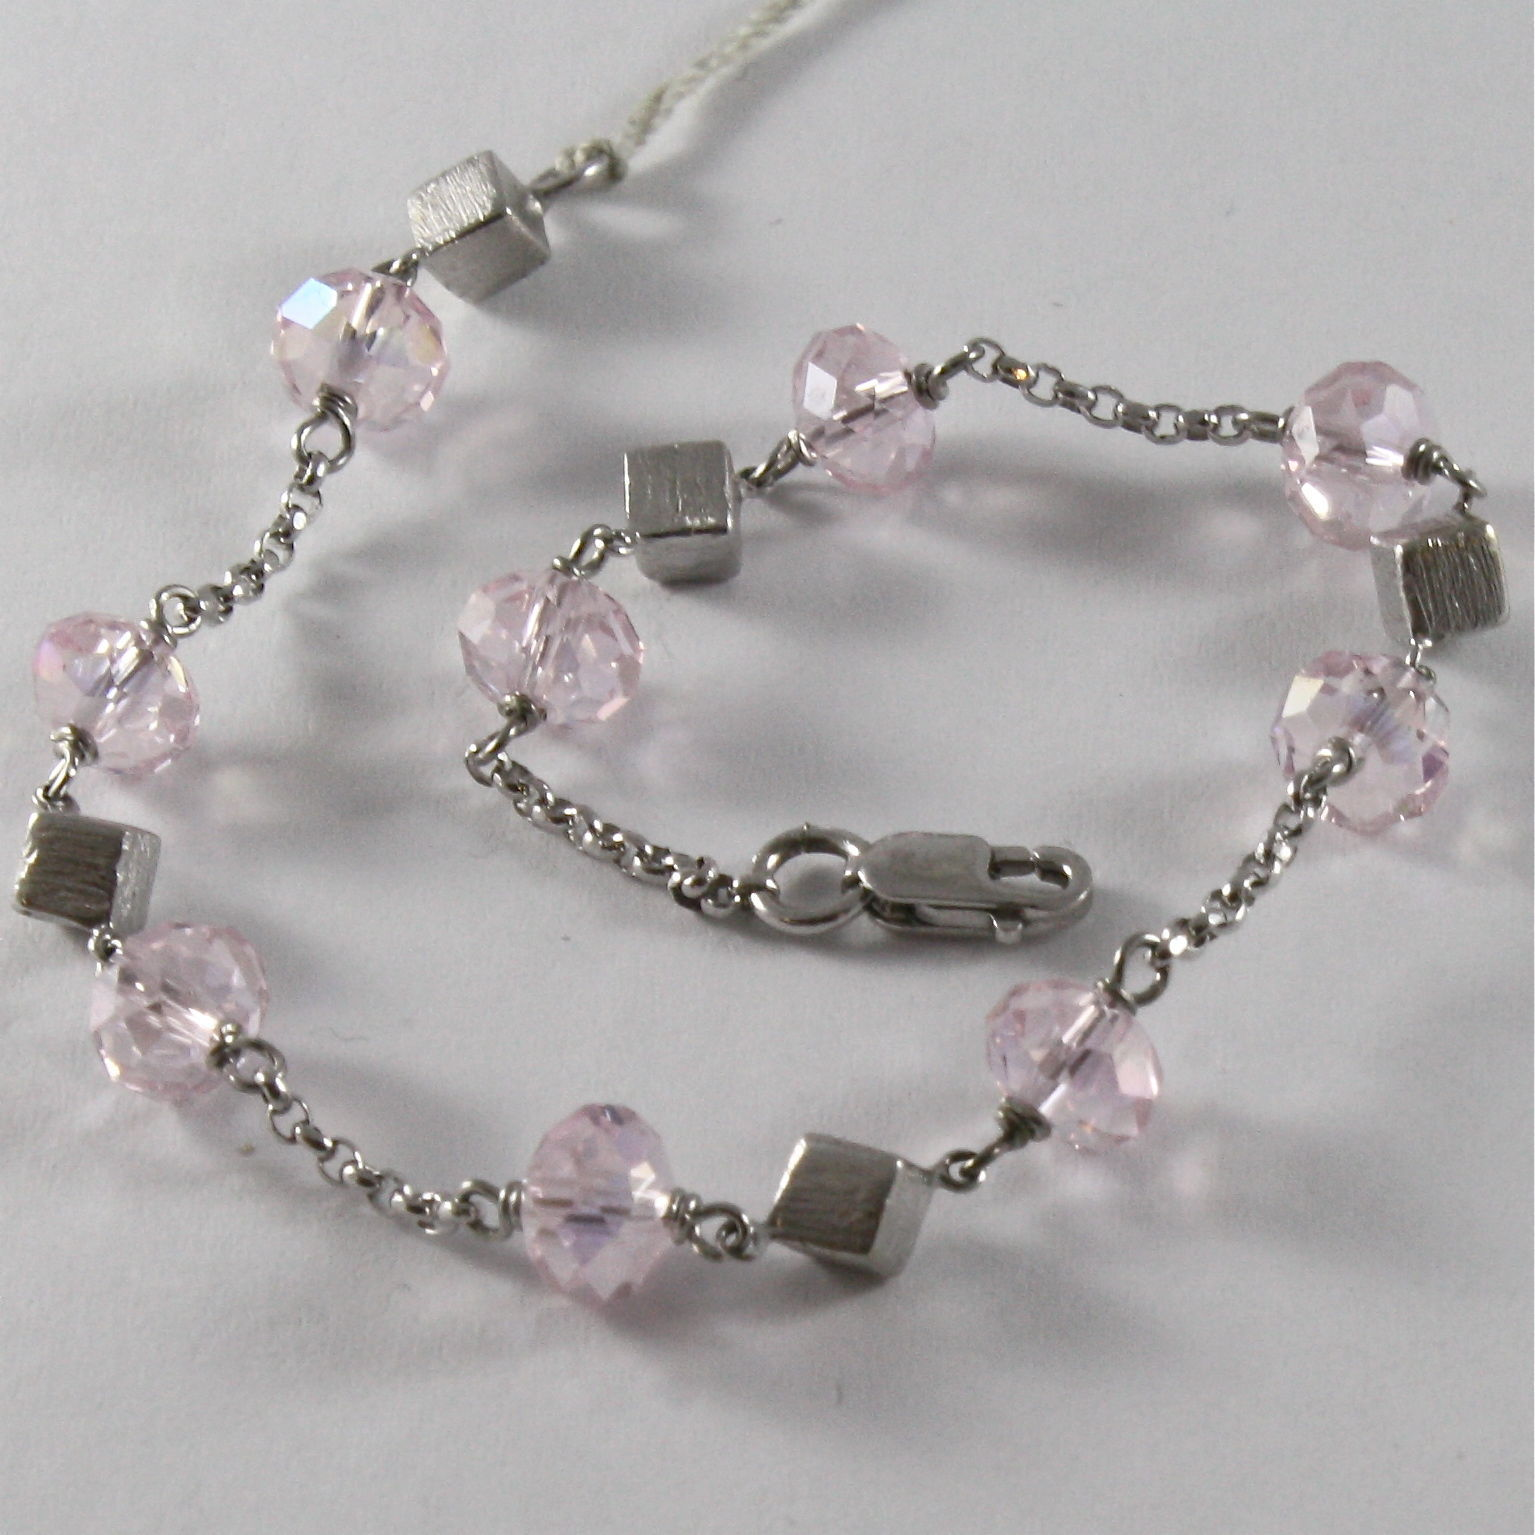 SOLID 18K WHITE GOLD BRACELET WITH PINK FACETED CRISTALS, CRISTAL MADE IN ITALY